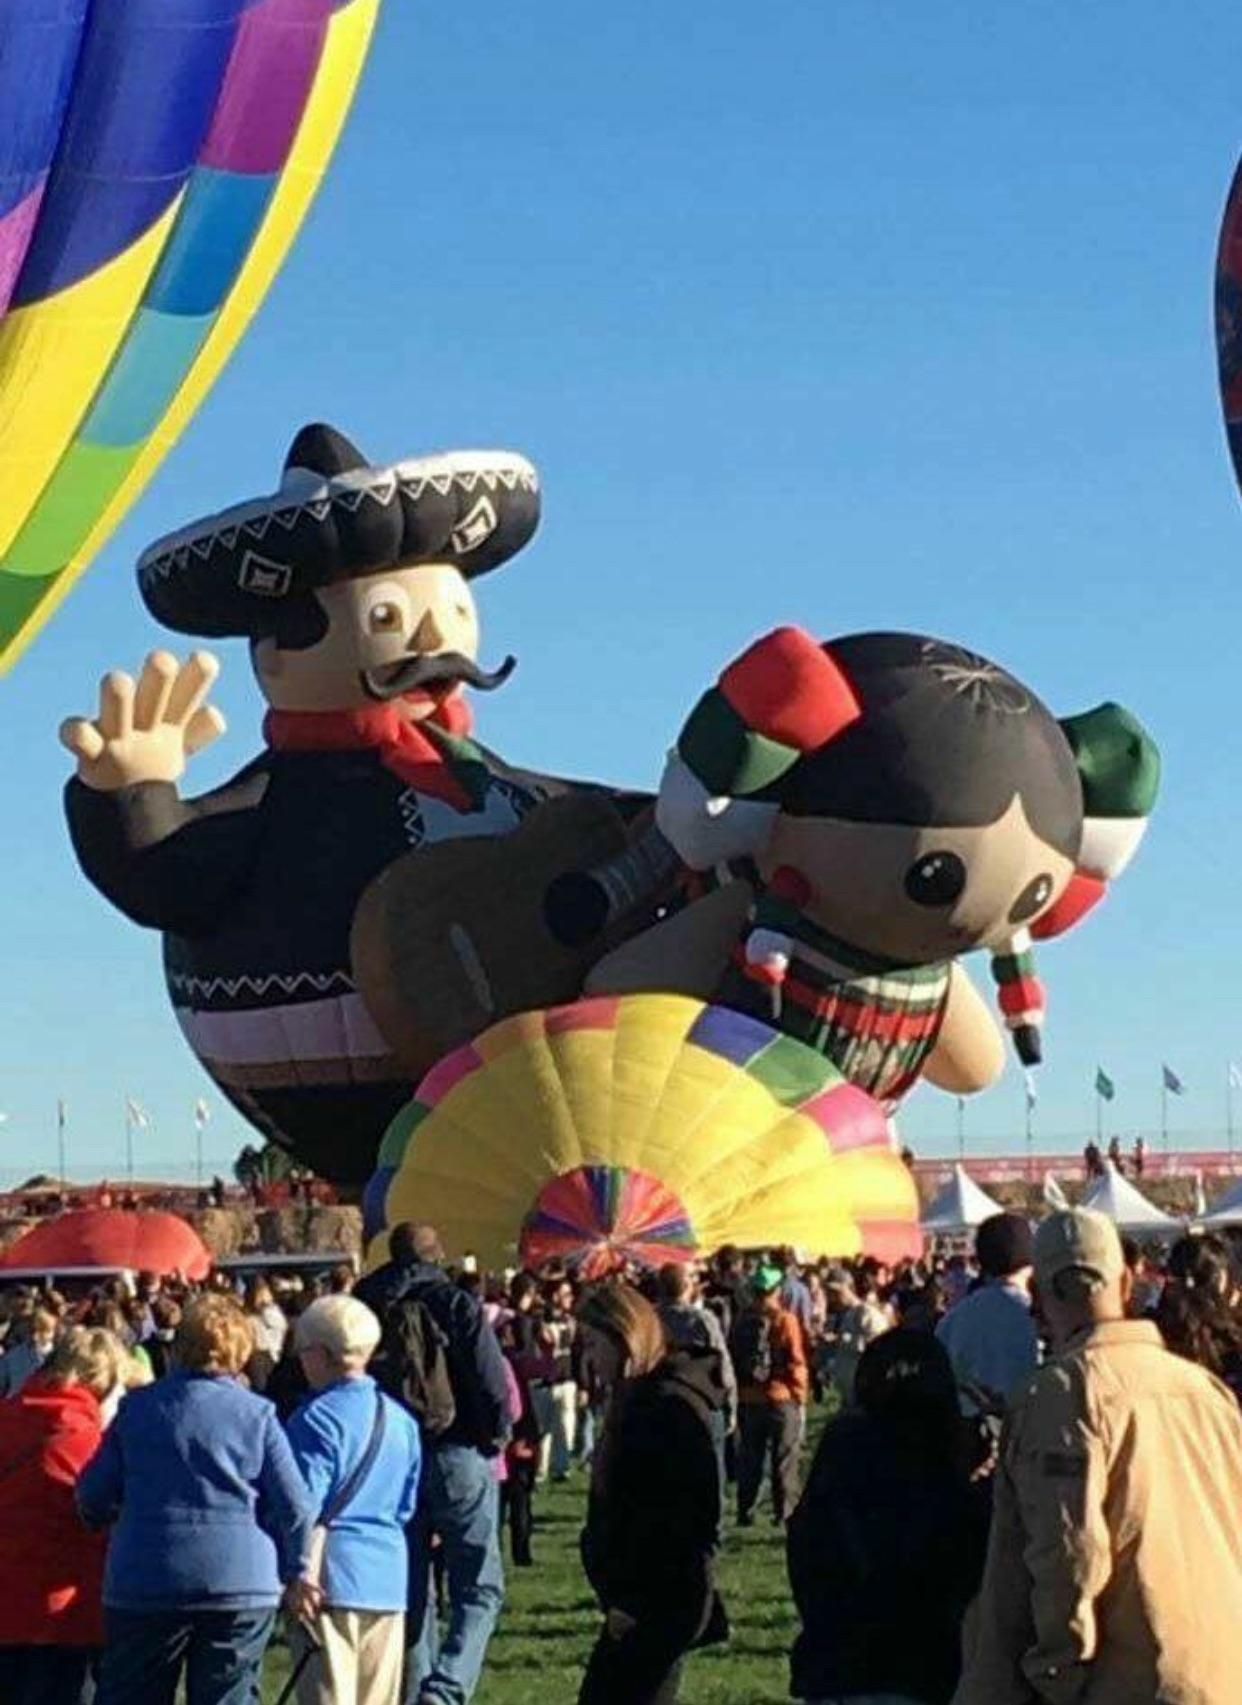 That's one way to get the Balloon Fiesta started